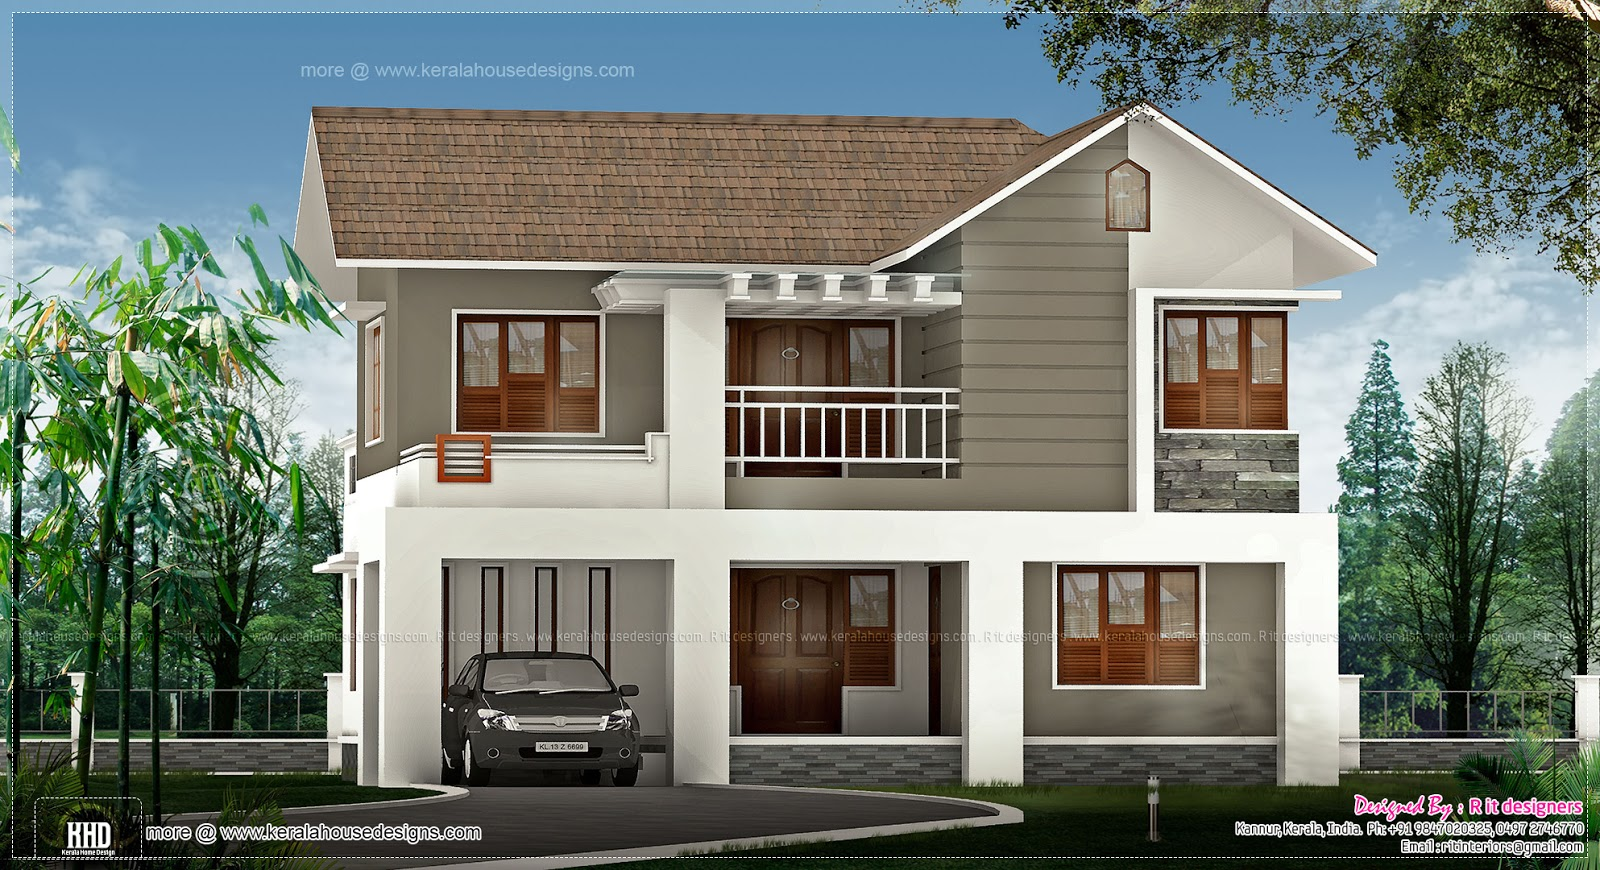 1829 sq ft home design in kannur kerala kerala home for Low cost house plans with estimate